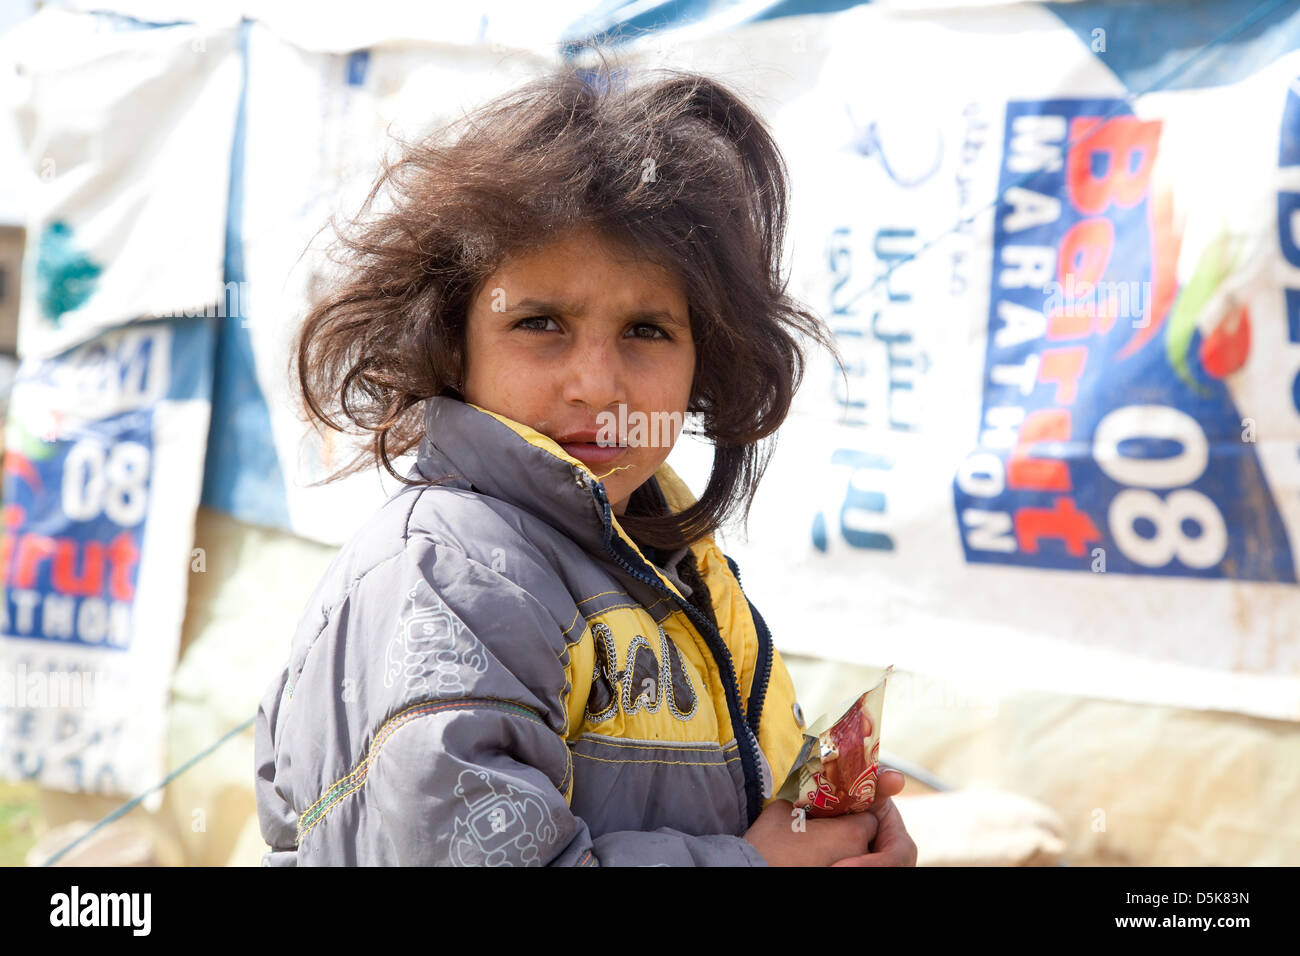 Young Syrian refugee girl, West Bekaa Valley Lebanon - Stock Image